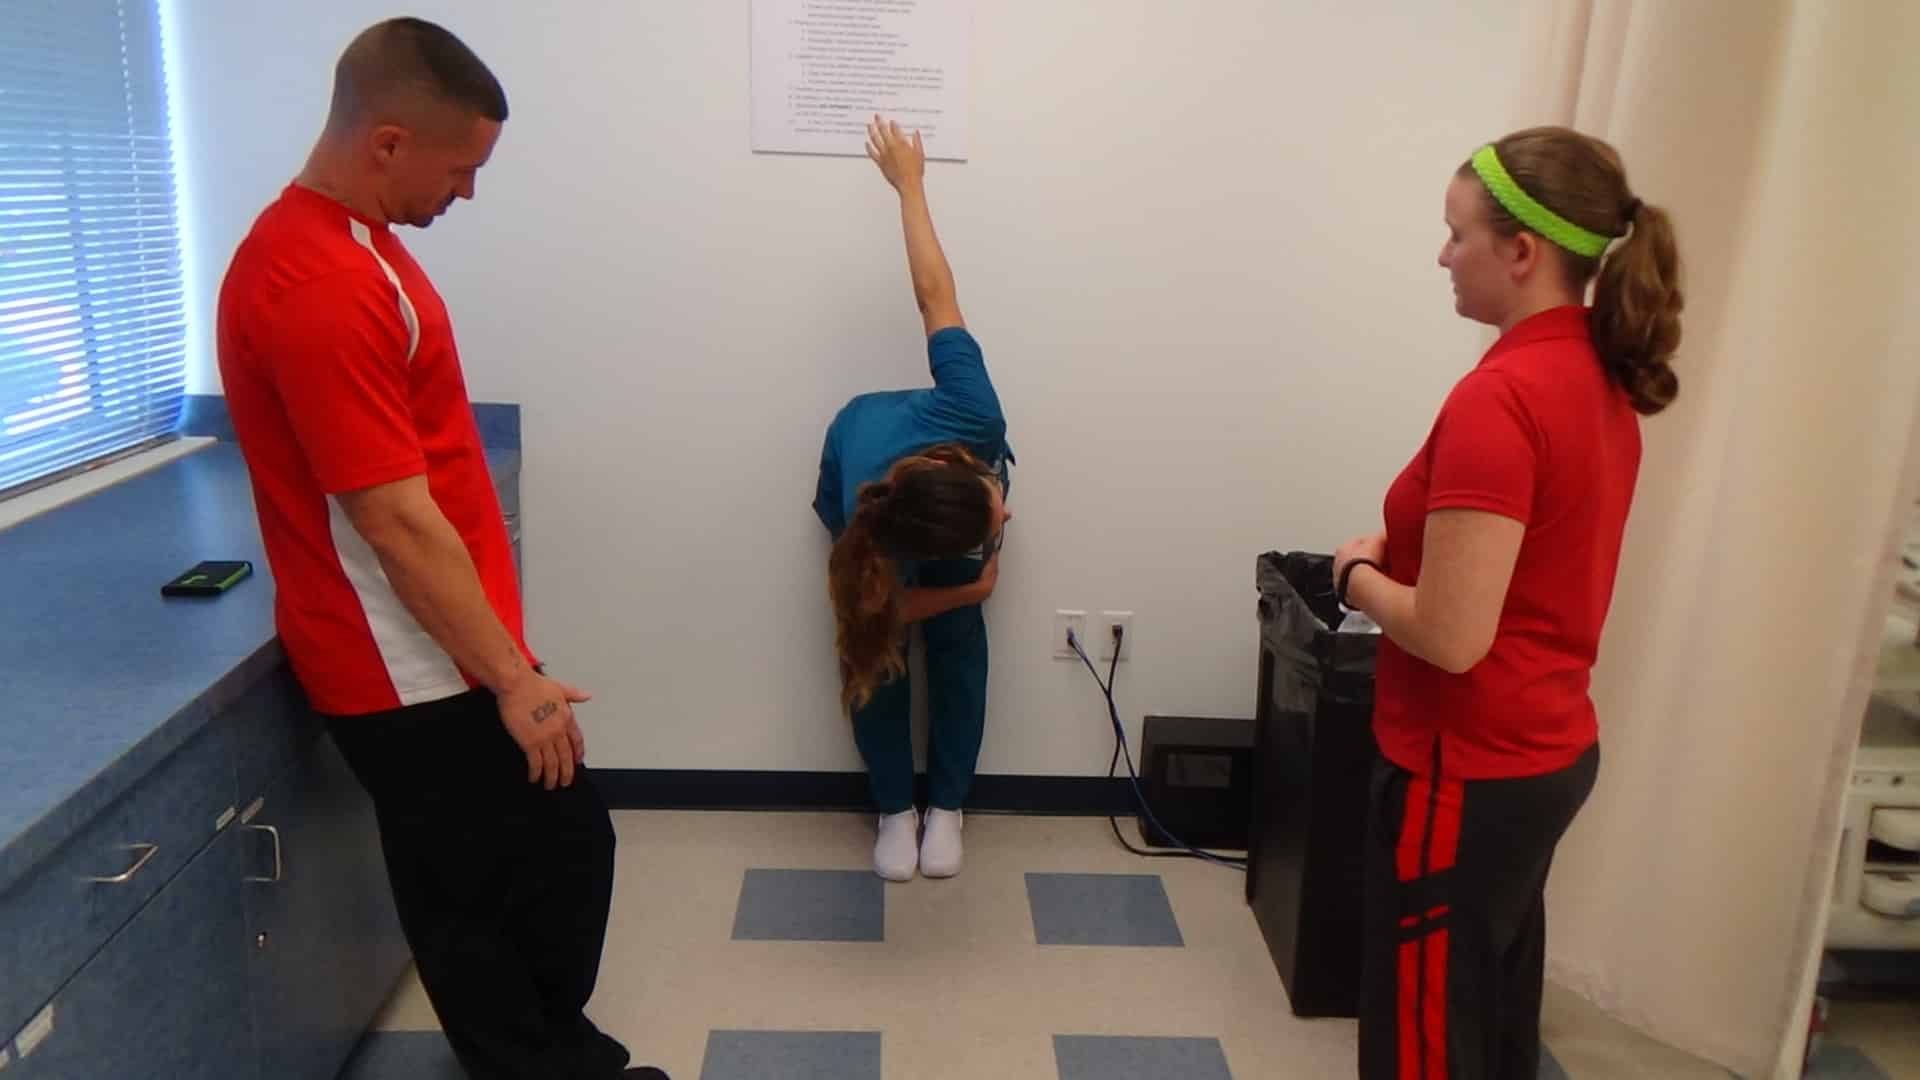 Fort Myers Sports Medicine & Fitness Technology Students Assist DMS Students in Ergonomics